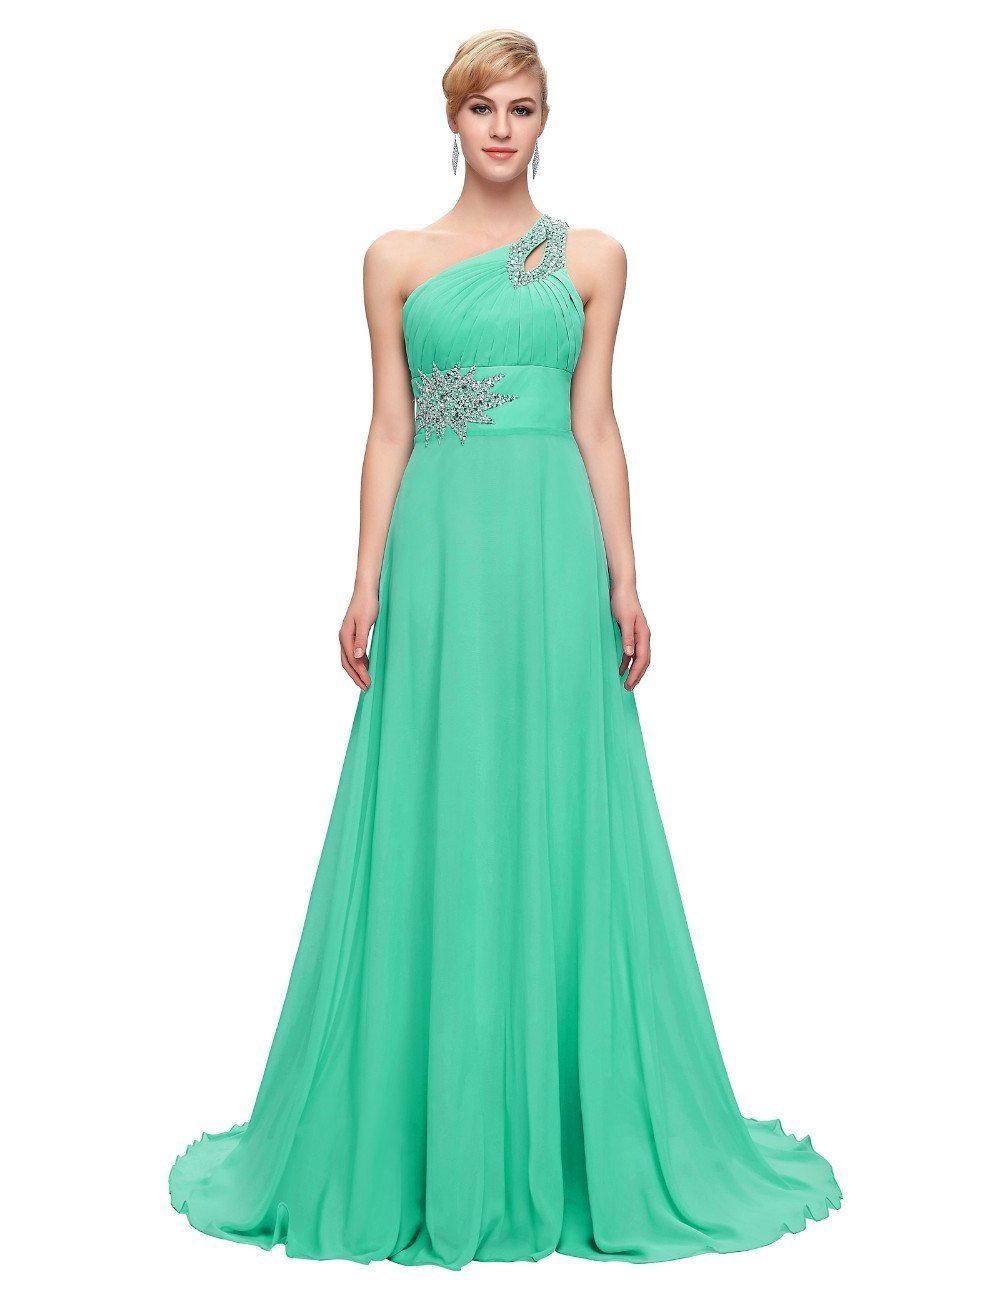 One Shoulder Floor Length Chiffon Prom Dress With Beading – TeresaClare